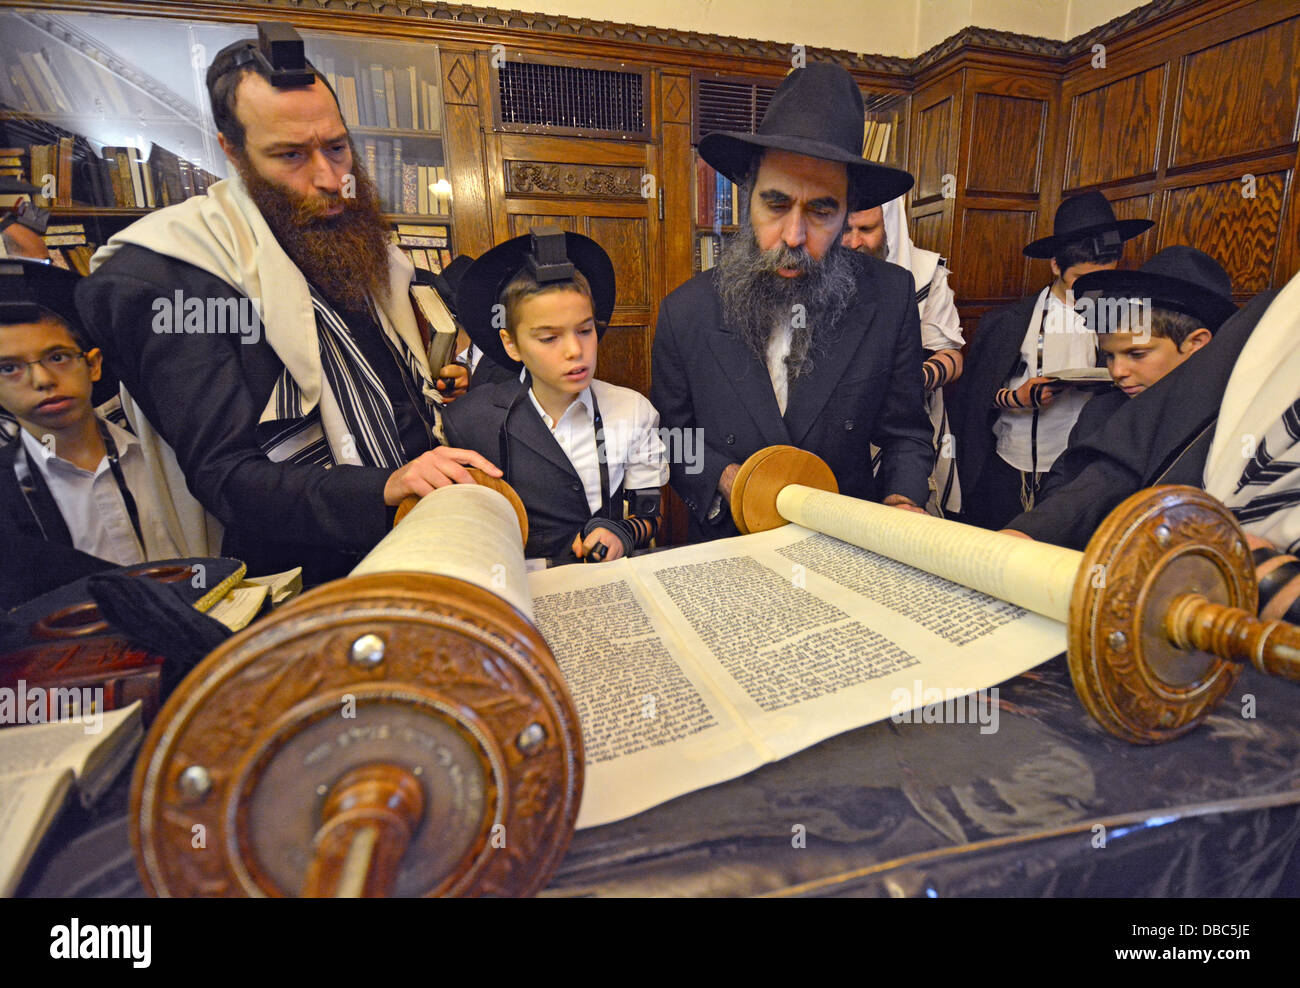 Religious Jews pray in the Rebbe's study at Lubavitch Headquarters in Brooklyn, New York. Bar Mitzvah boy called - Stock Image